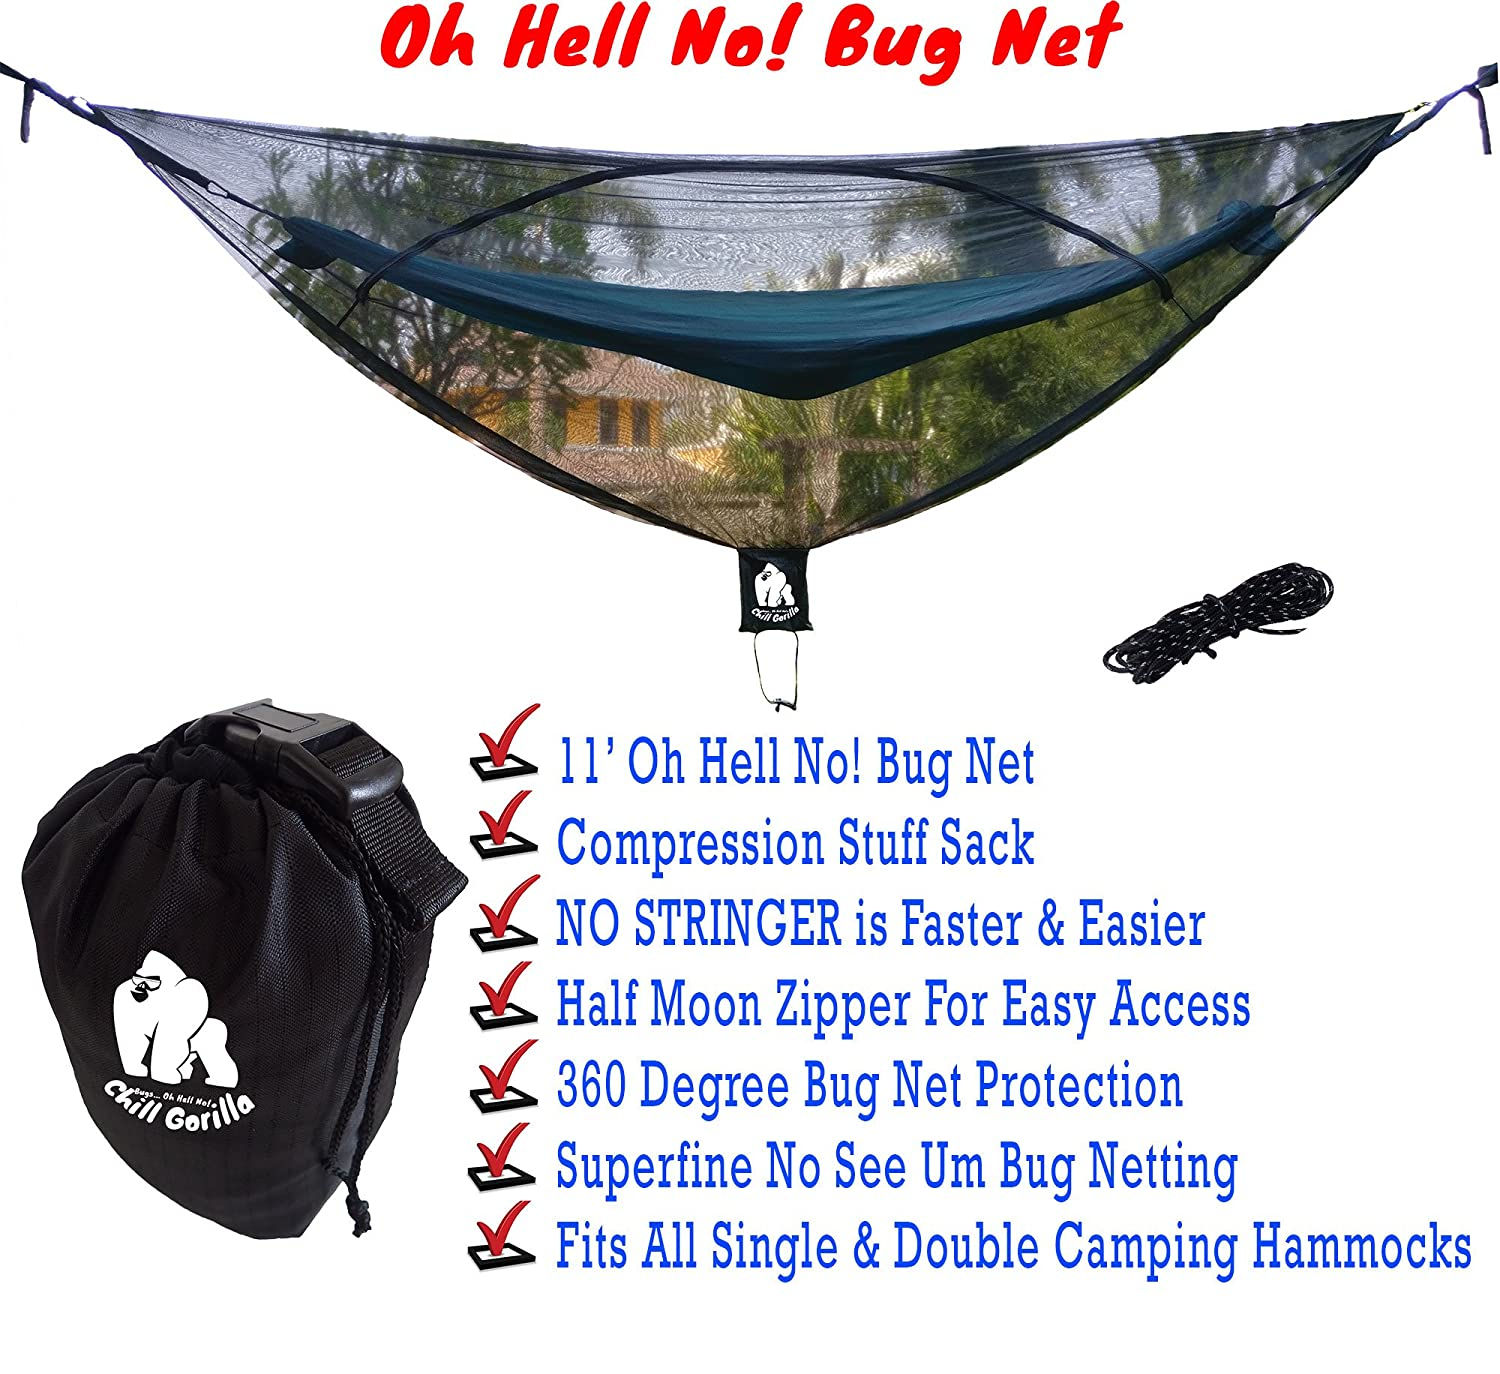 11 u0027 bug   stops mosquitoes no see ums  u0026 repels insects  fits all camping hammocks   pact lightweight  size 132   x 51    essential backpacking jungle     amazon    chill gorilla oh hell no  11 u0027 bug   stops mosquitoes      rh   amazon